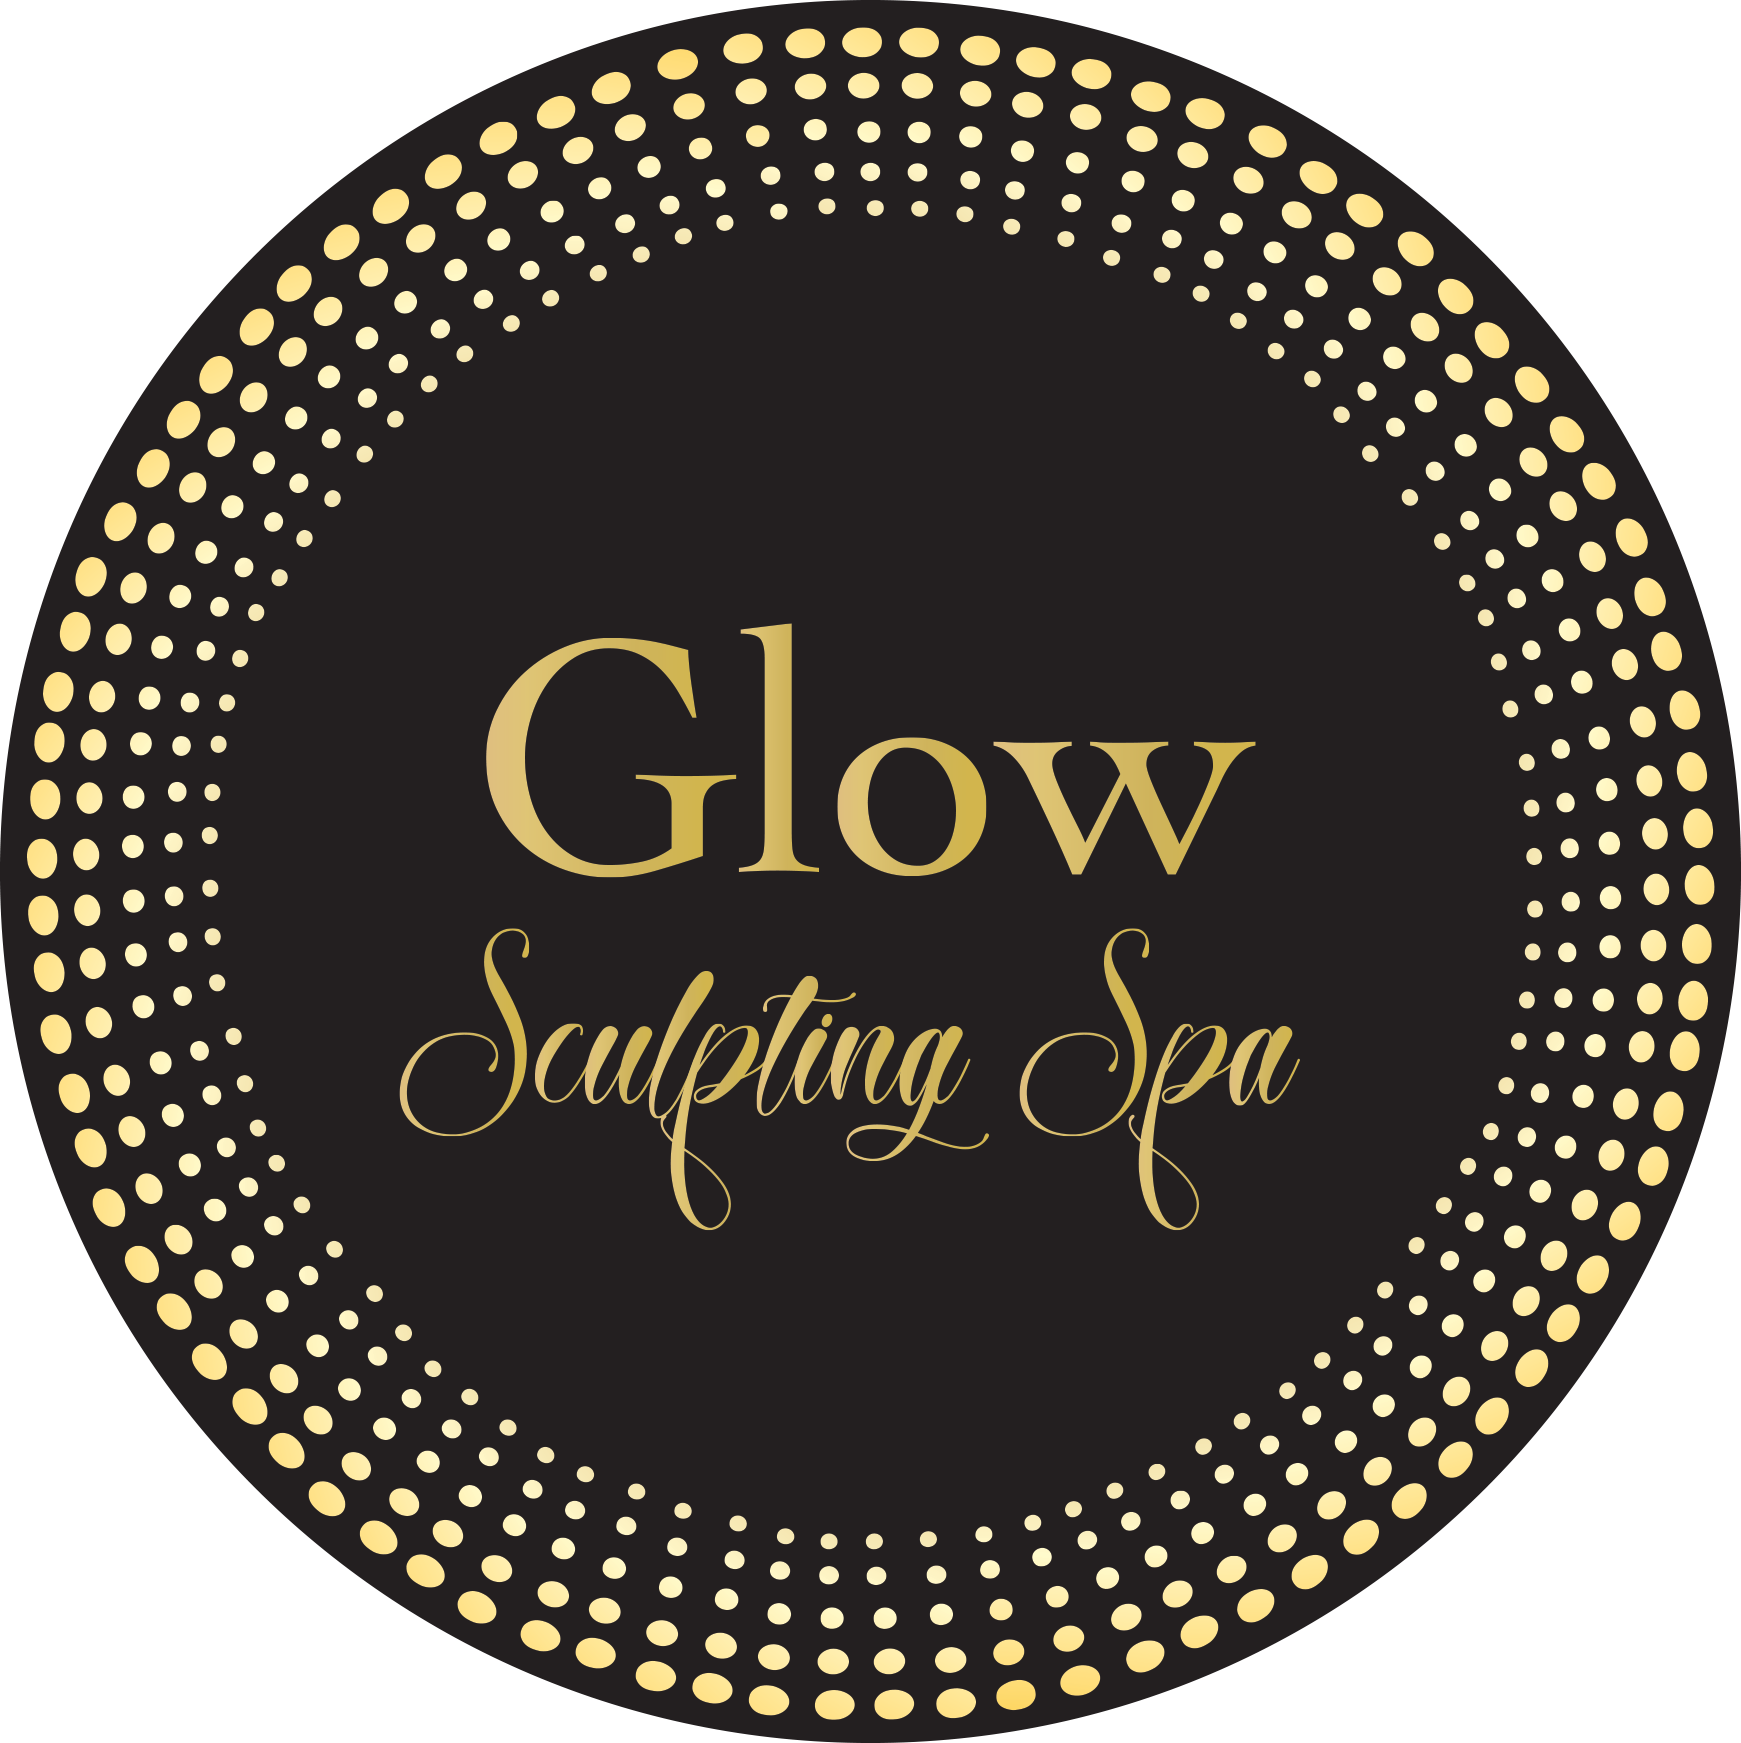 Glow Sculpting Spa